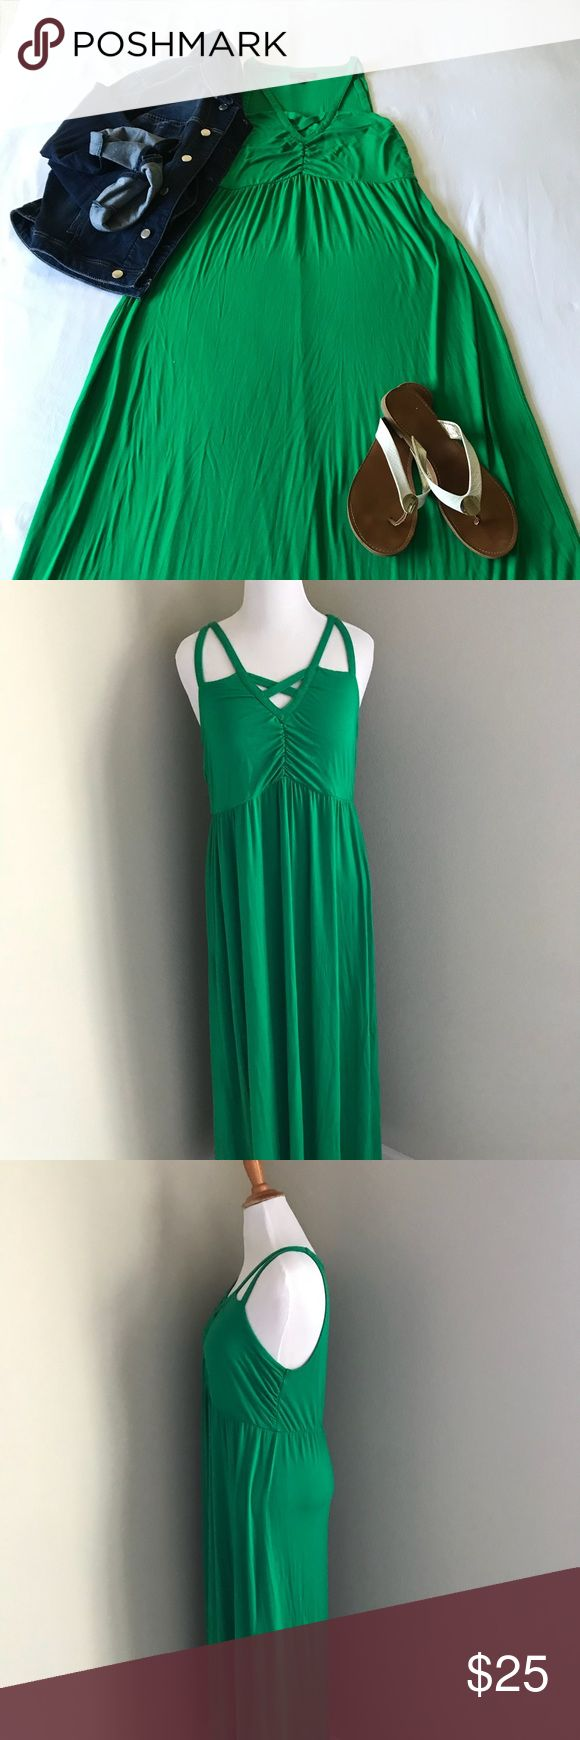 Kelley Green Maxi Dress Your friends are gonna be green with envy as you rock St. Patty's Day and summer days in this bold Kelley Green Maxi Dress. Don't pass this one up! Lane Bryant Dresses Maxi